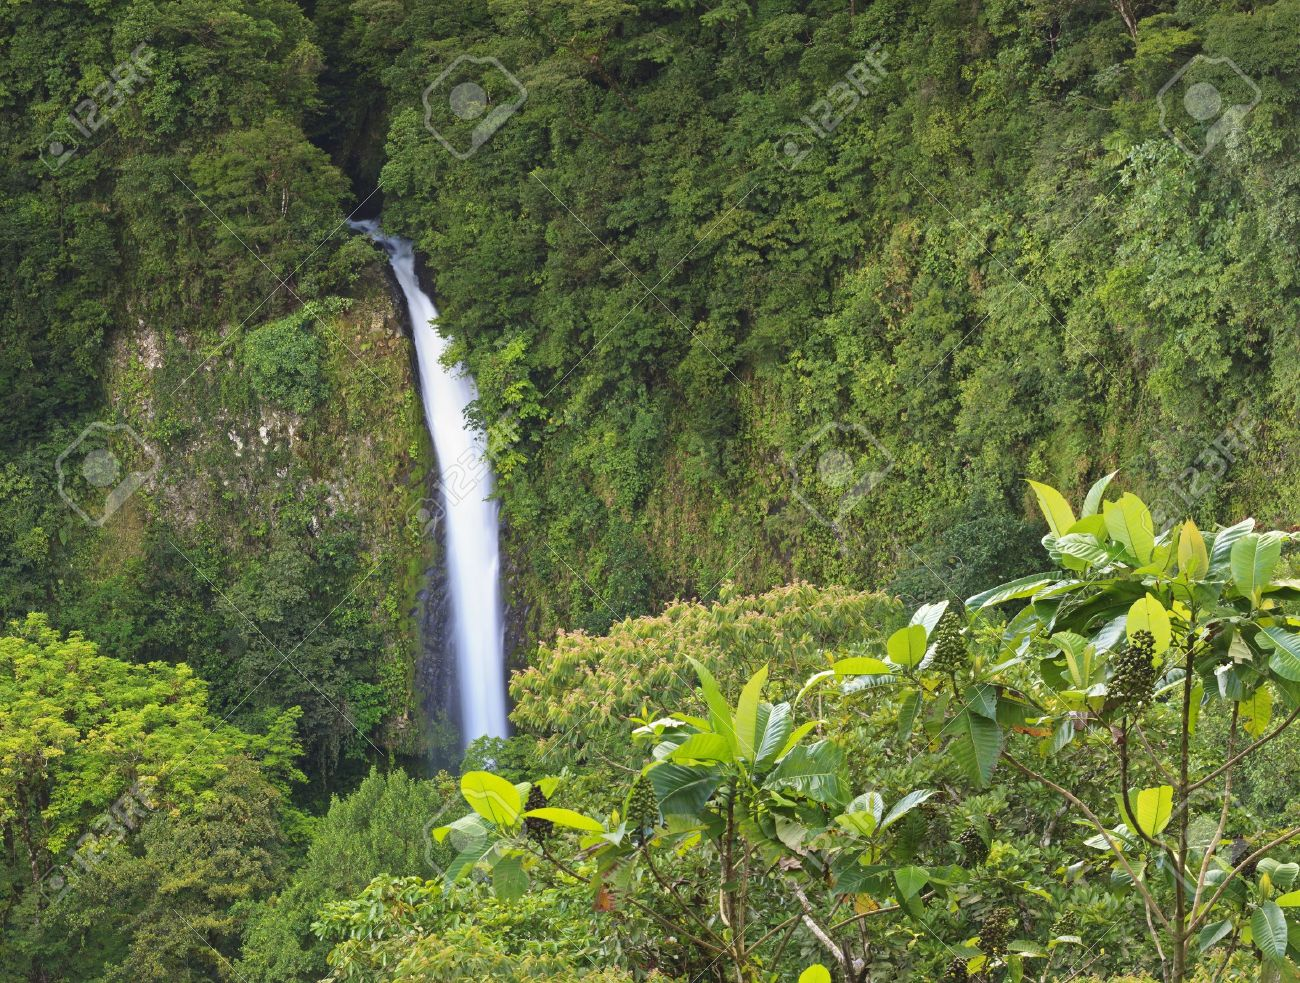 Distant view of La Fortuna Waterfall amongst the rainforest near Arenal Volcano in Costa Rica - 13438801